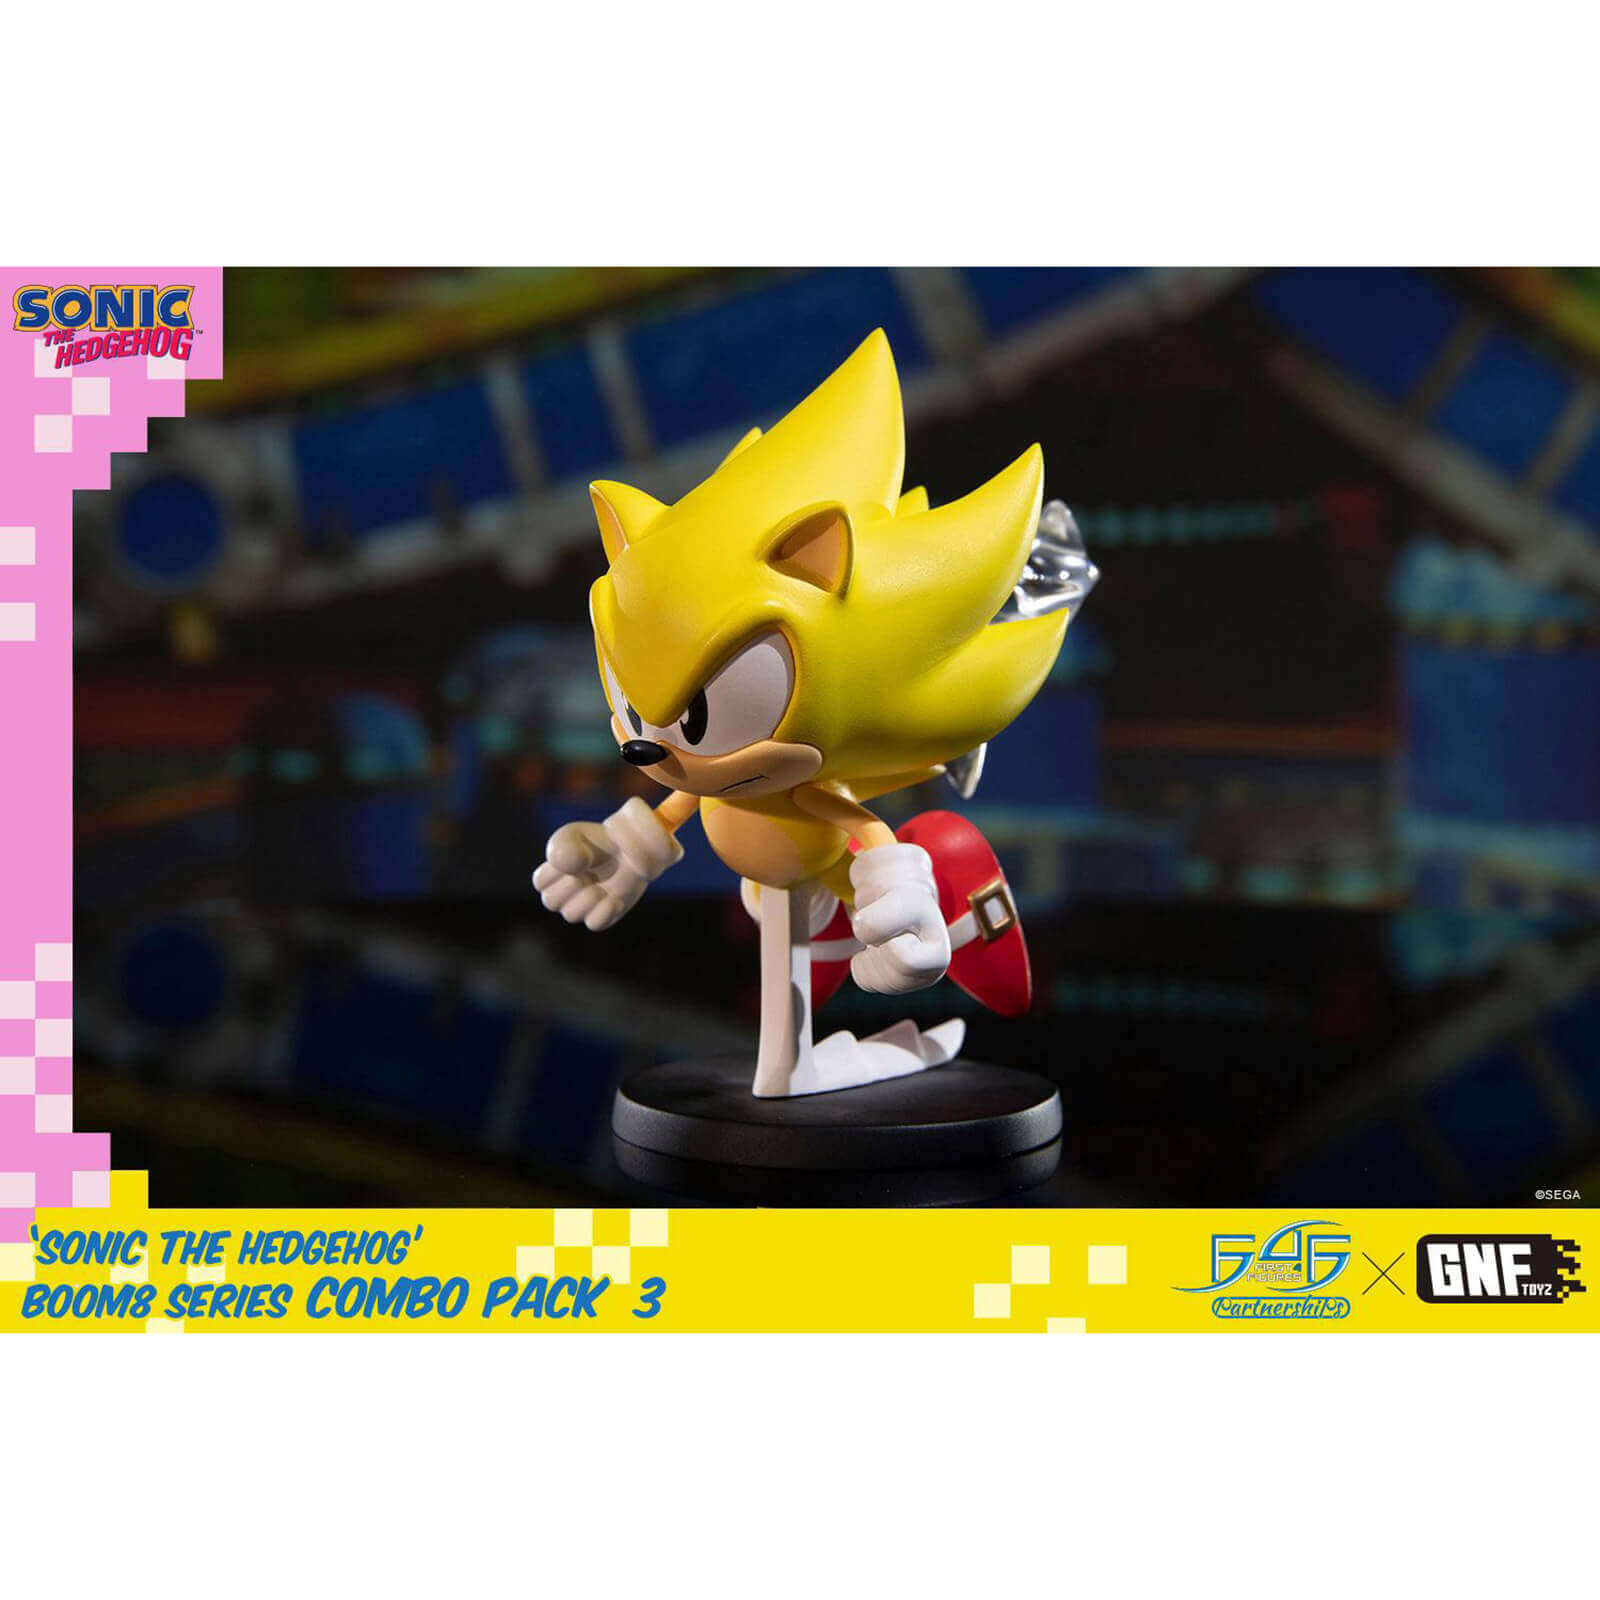 Image of First 4 Figures Sonic the Hedgehog BOOM8 Series PVC Figure Vol. 06 Super Sonic (8cm)